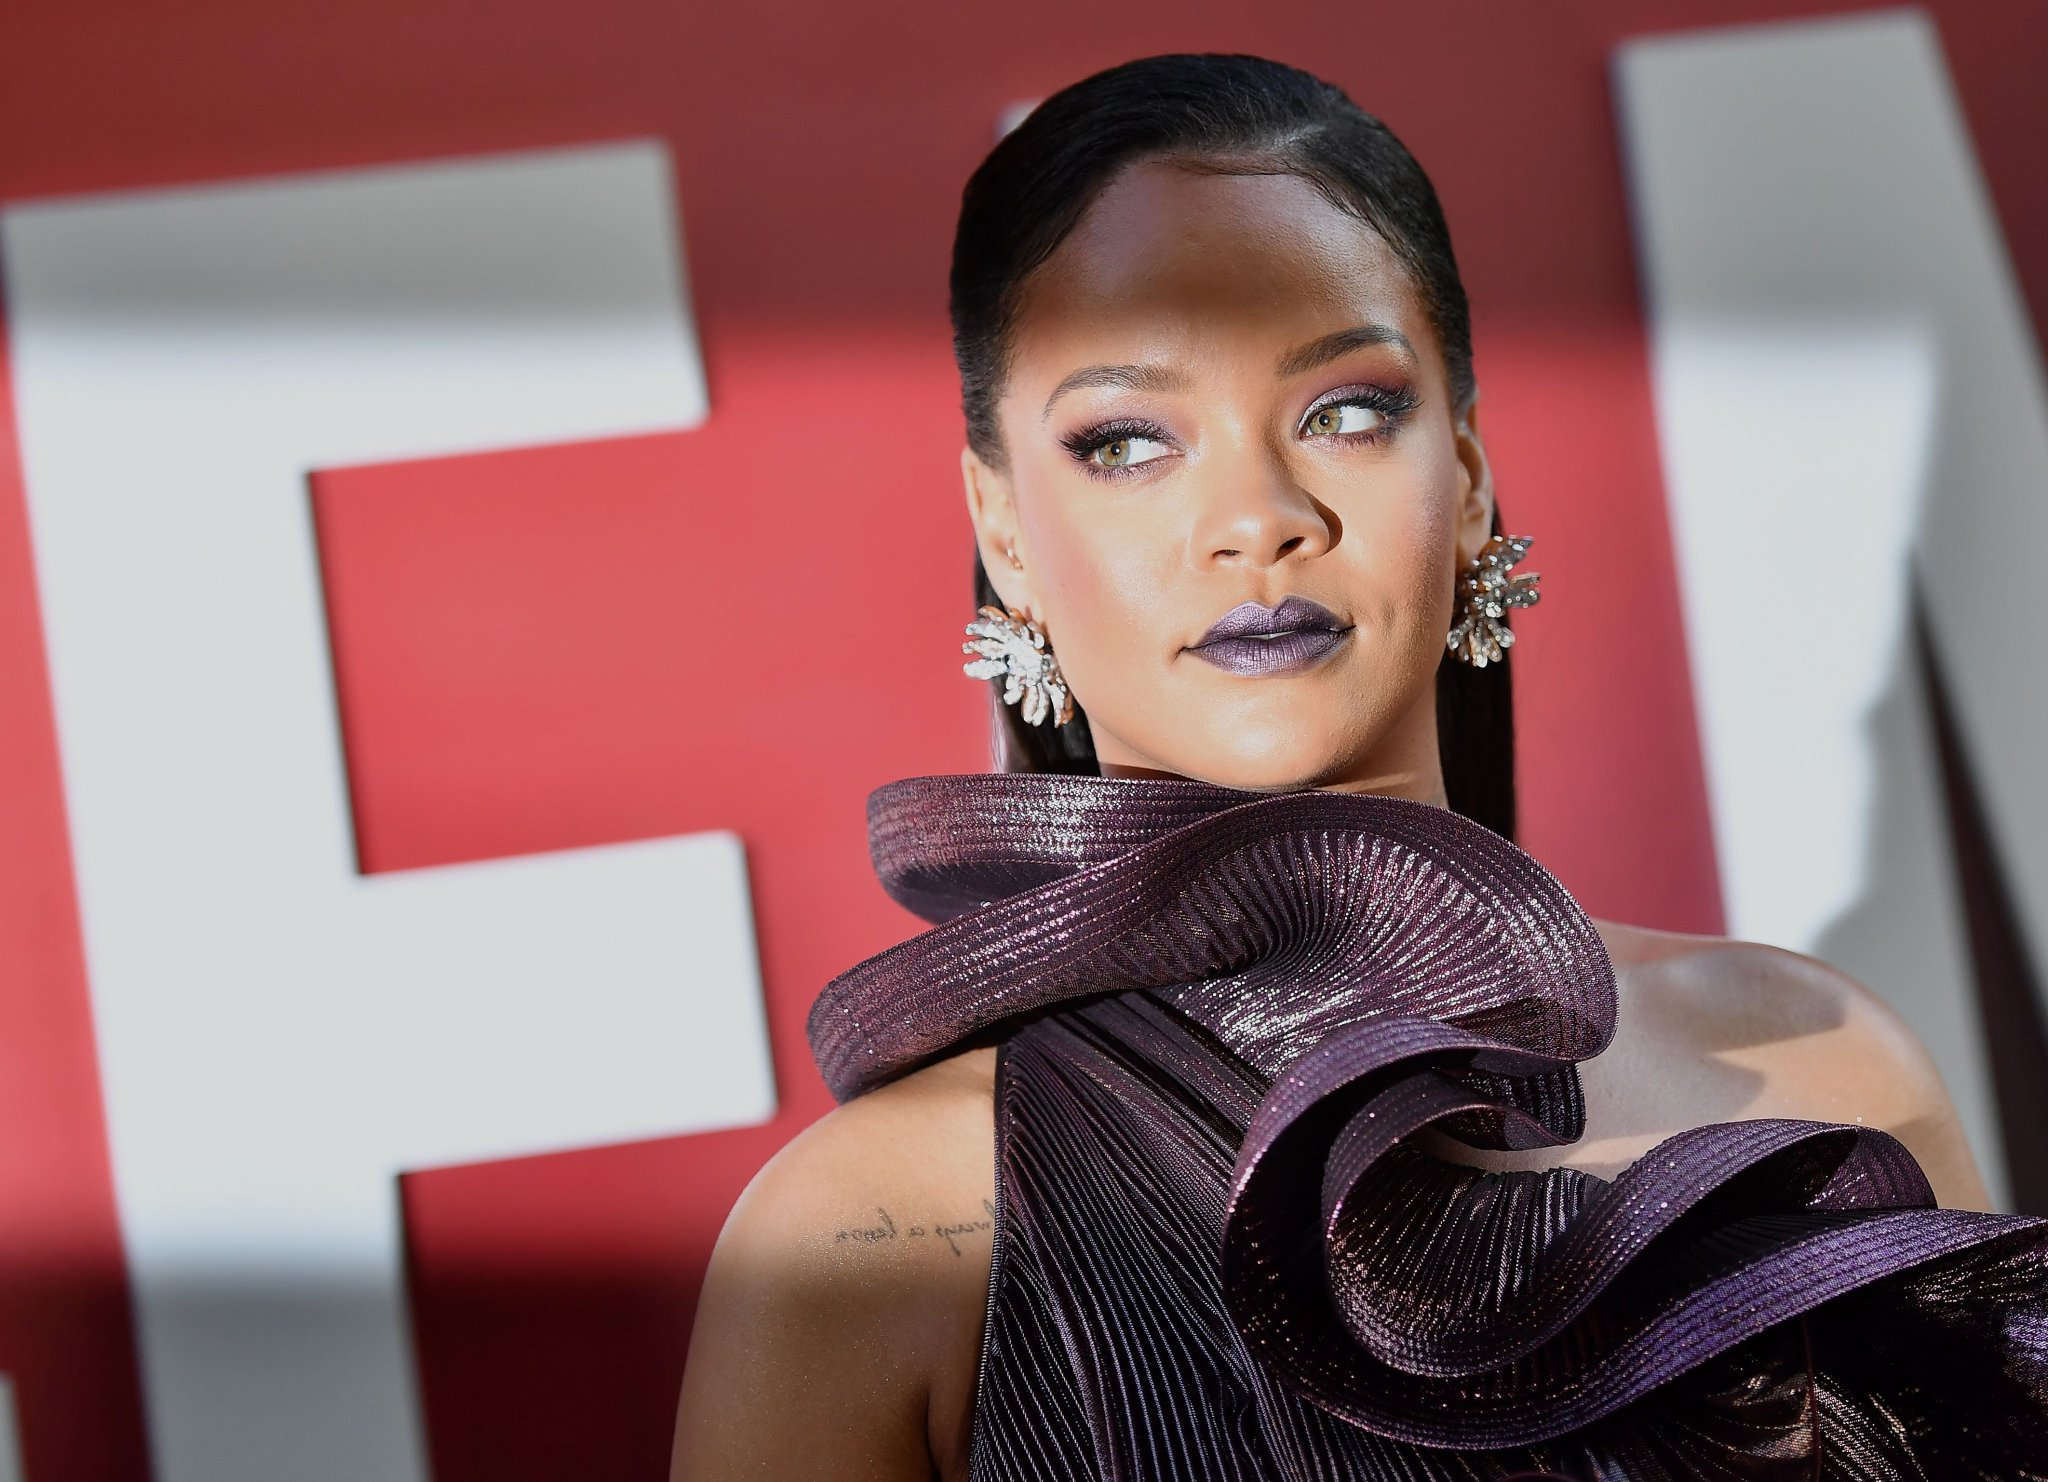 @rihanna gets a chance to explain herself on the @TheGNShow about her wine glass theft. https://t.co/qyCC9DmWcO https://t.co/kzCwuJleSe